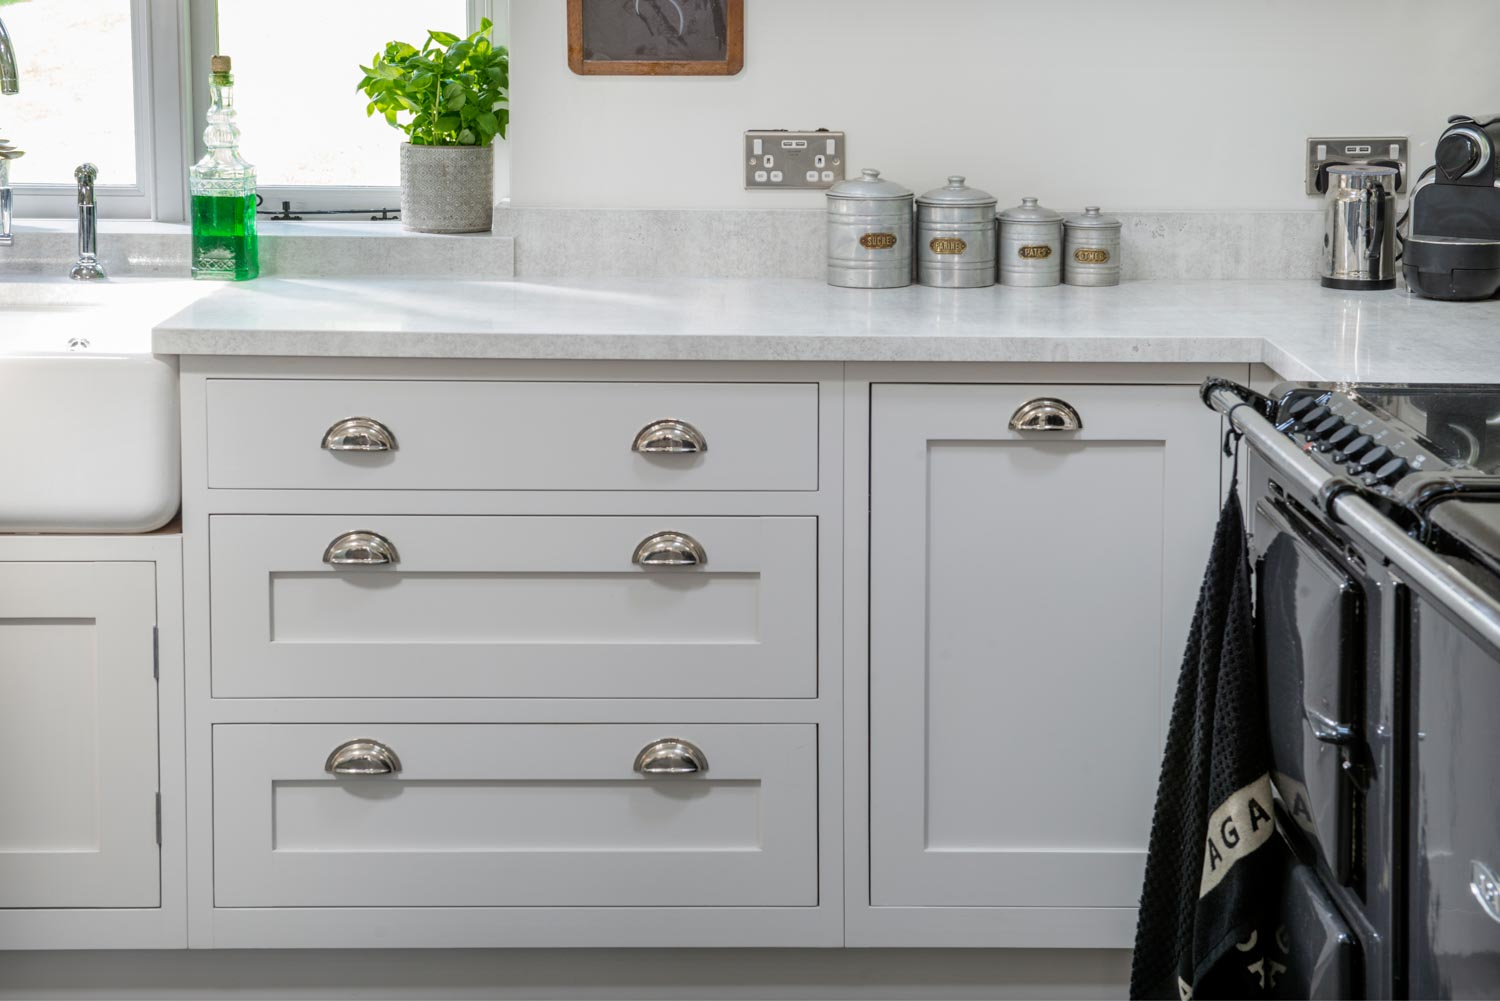 Renovate With Rtf Cabinetry Granite, What Does Rtf Mean In Cabinets